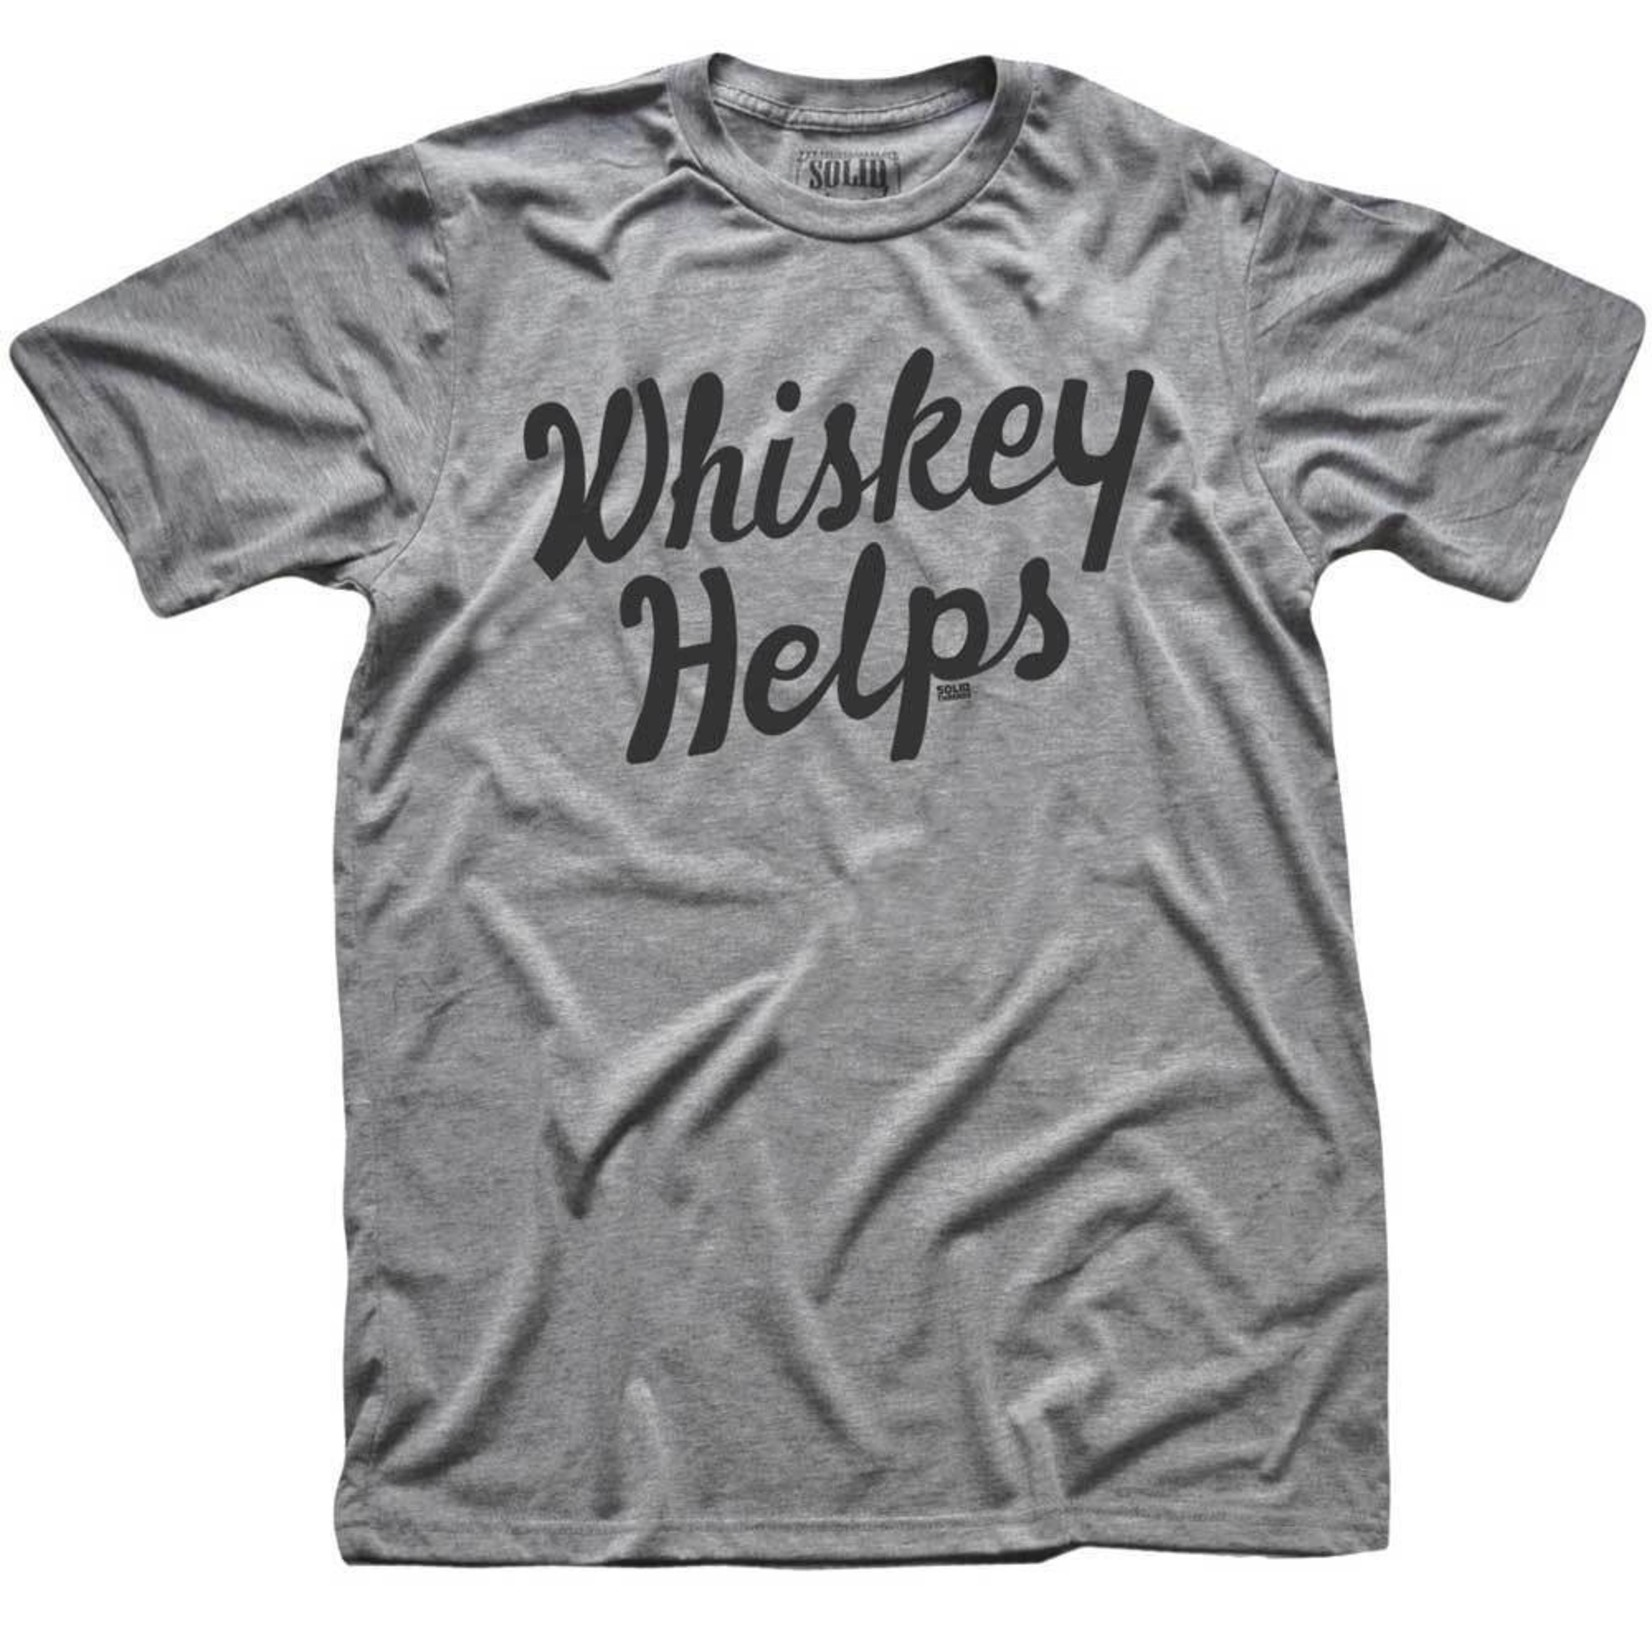 Solid Threads Solid Threads Whiskey Helps T-shirt - P-144350